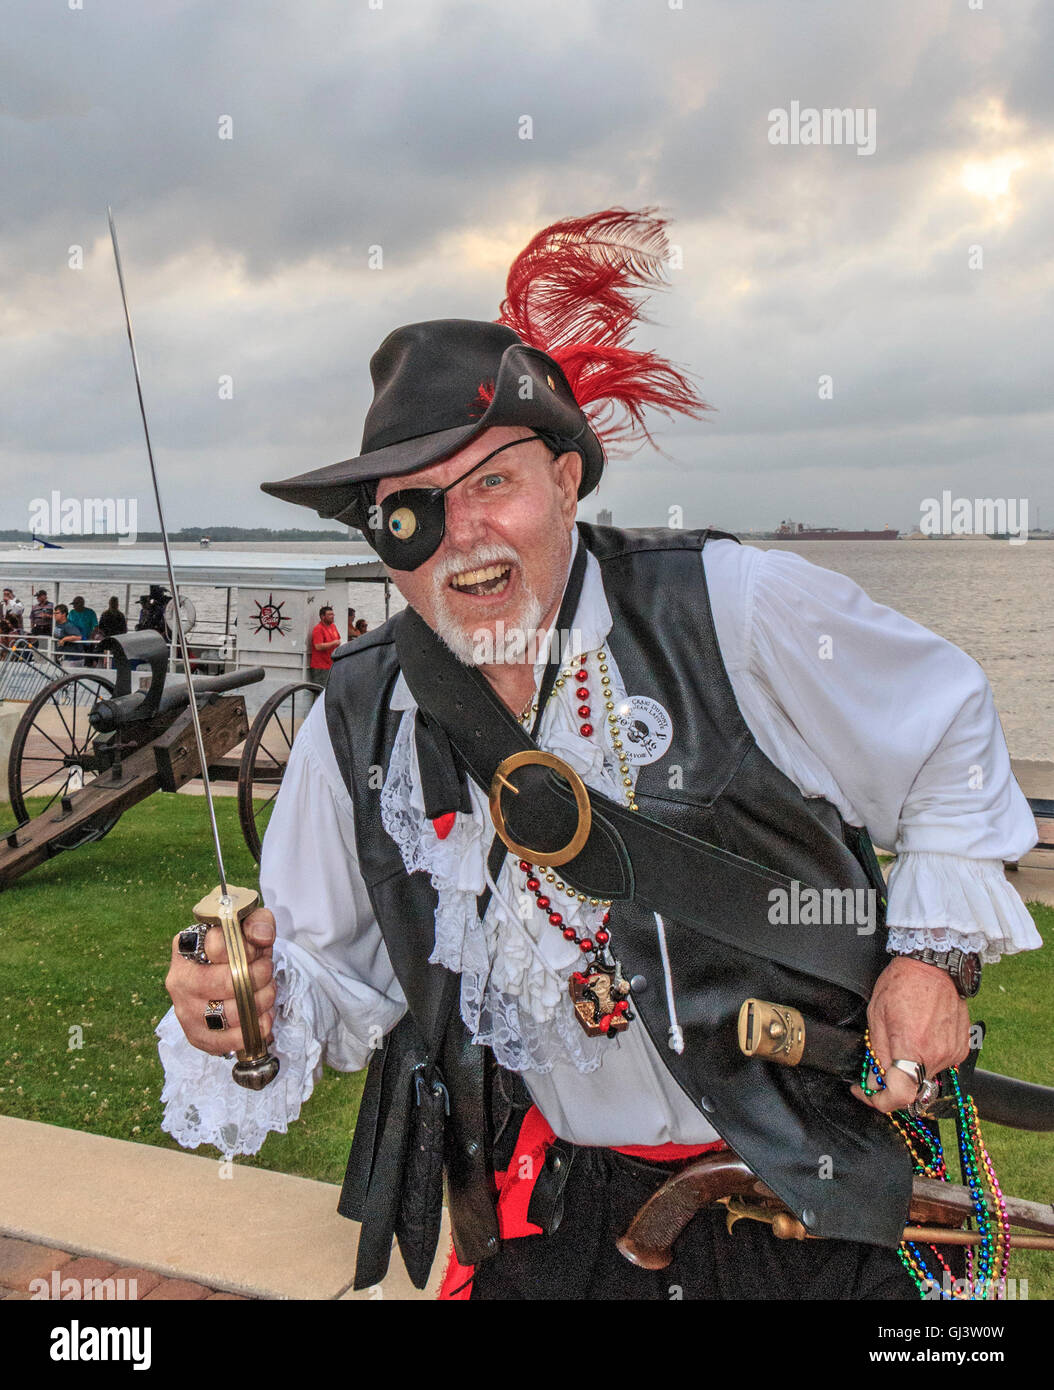 Snarling pirate during Contraband Days in Lake Charles, Louisiana, celebrating the days of pirate Jean Lafitte. - Stock Image